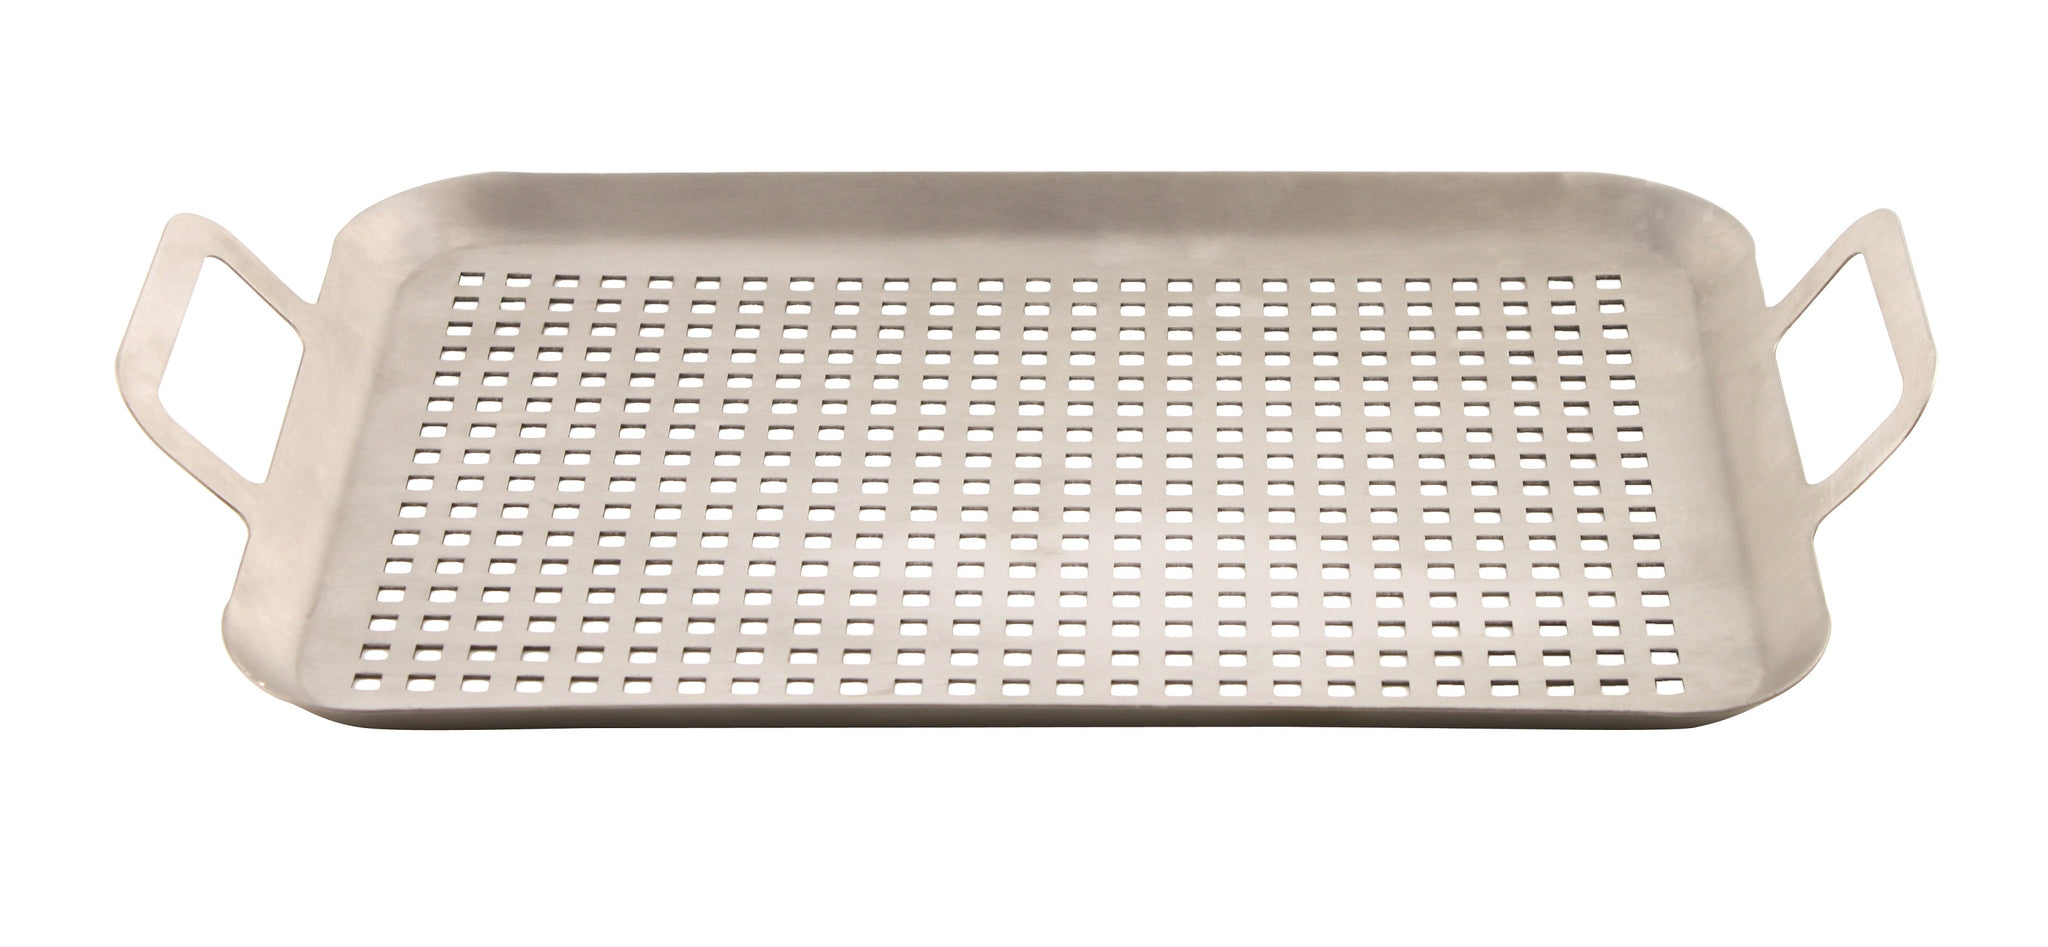 Stainless Steel Cooking Tray